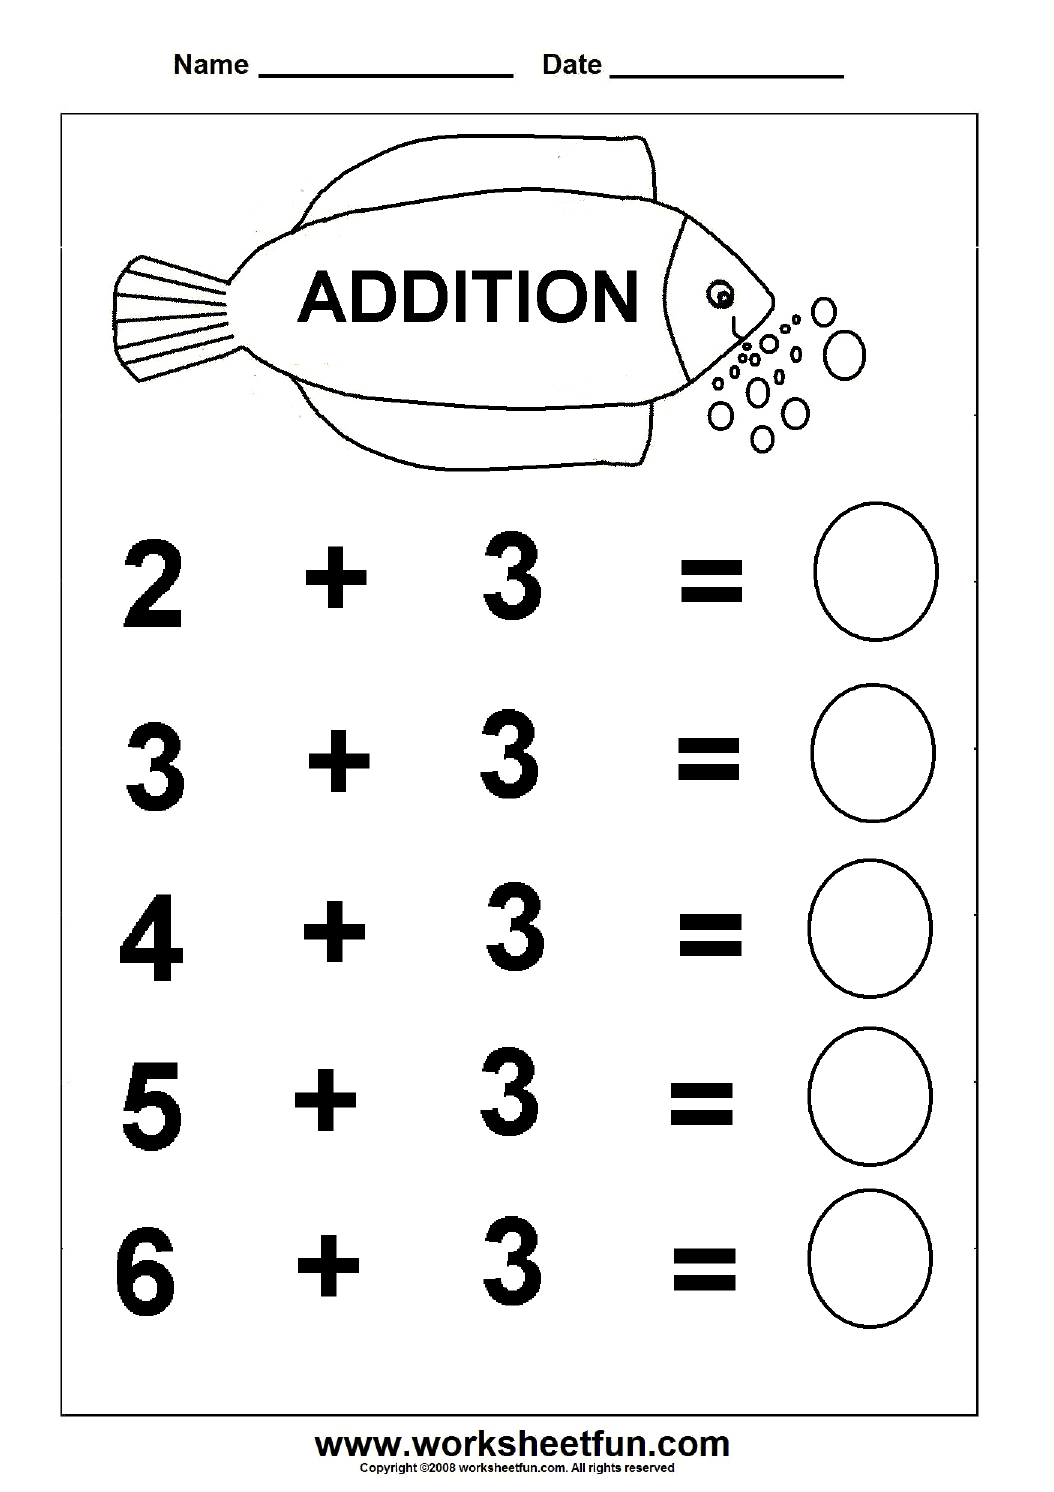 Beginner Addition – 6 Kindergarten Addition Worksheets / Free | Free Printable Fun Worksheets For Kindergarten